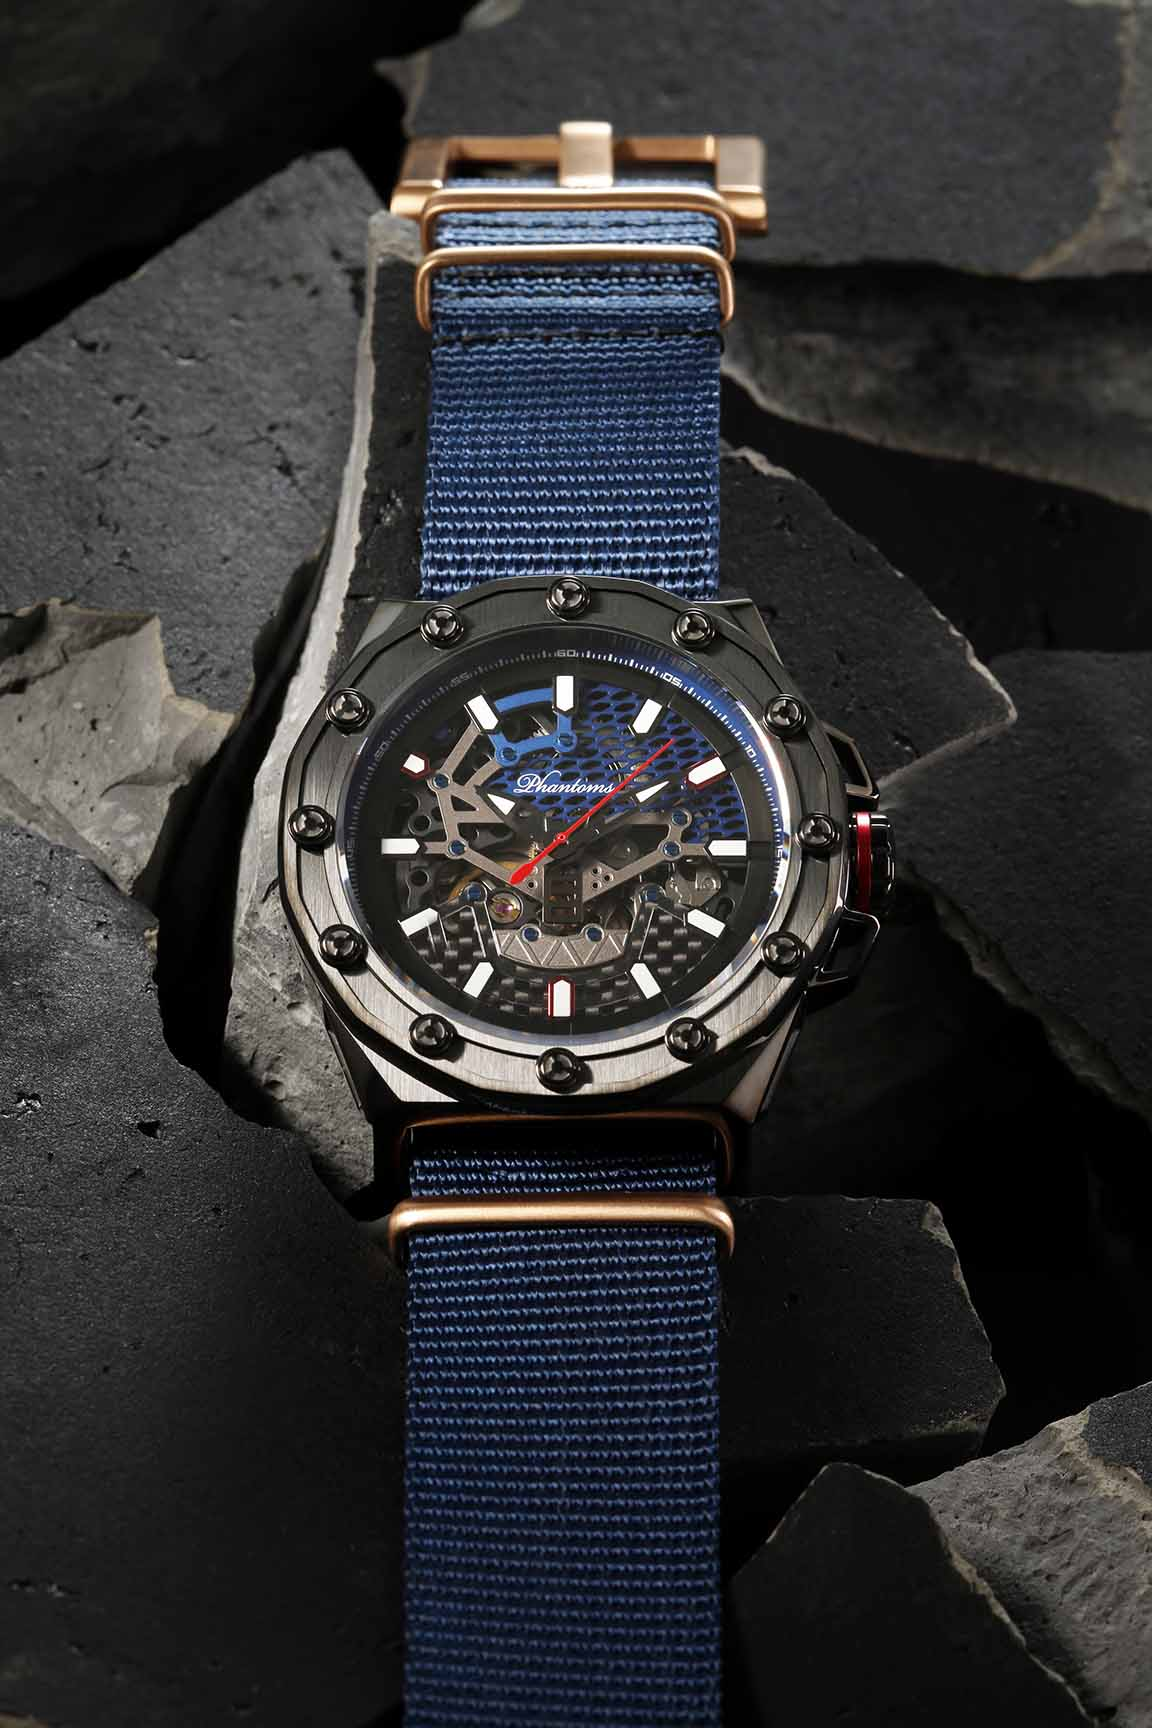 Talisman Boneyard Phantoms Automatic Watch Blue Strap Skeleton Movement